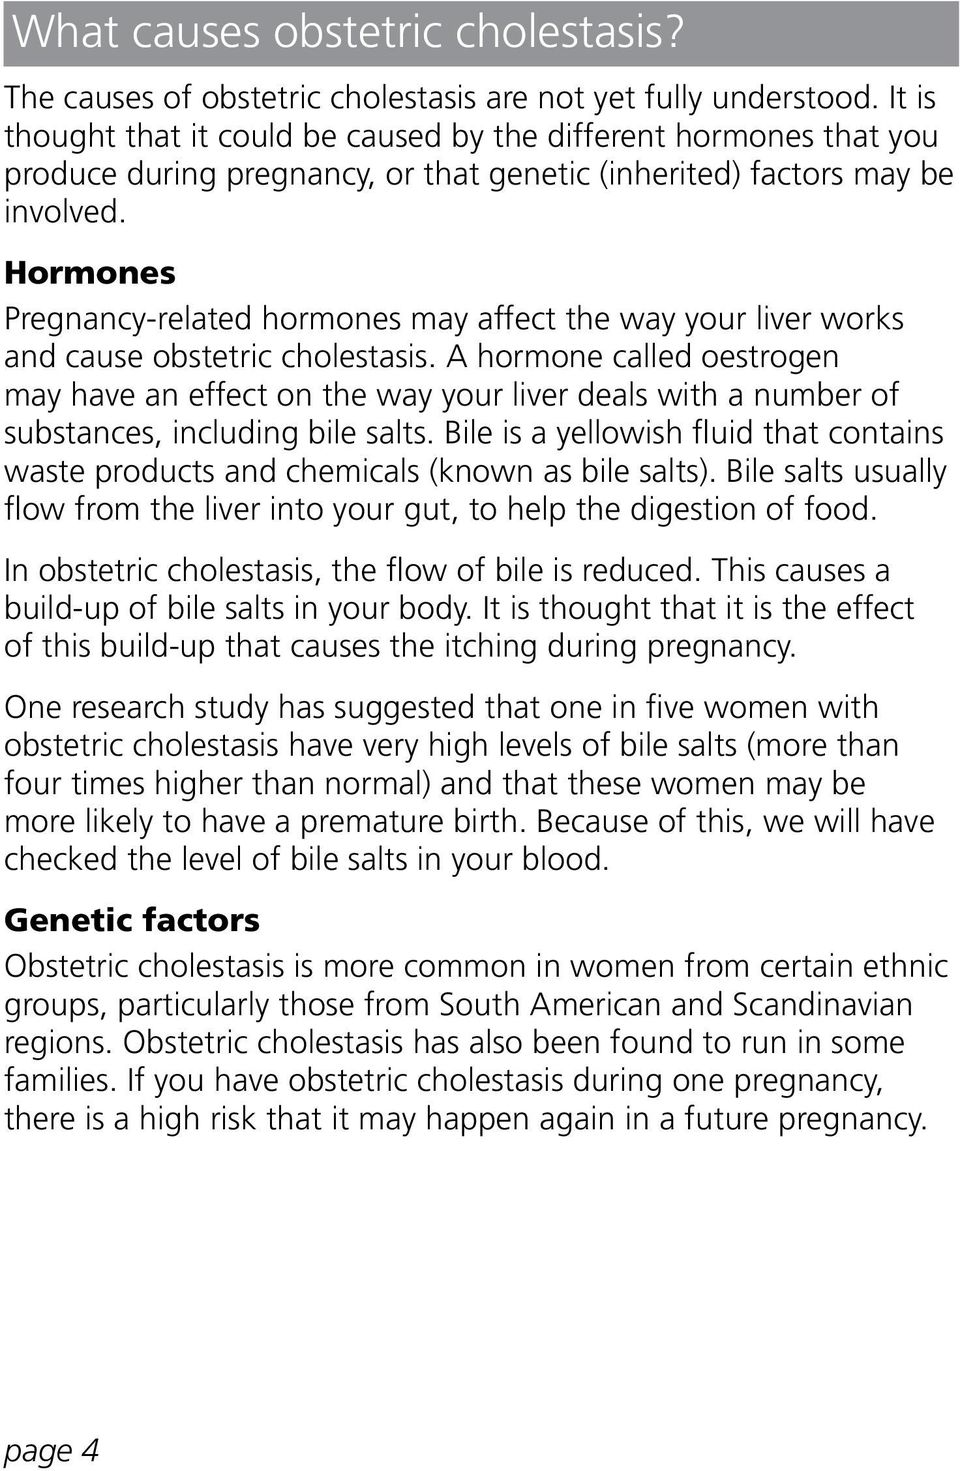 Hormones Pregnancy-related hormones may affect the way your liver works and cause obstetric cholestasis.